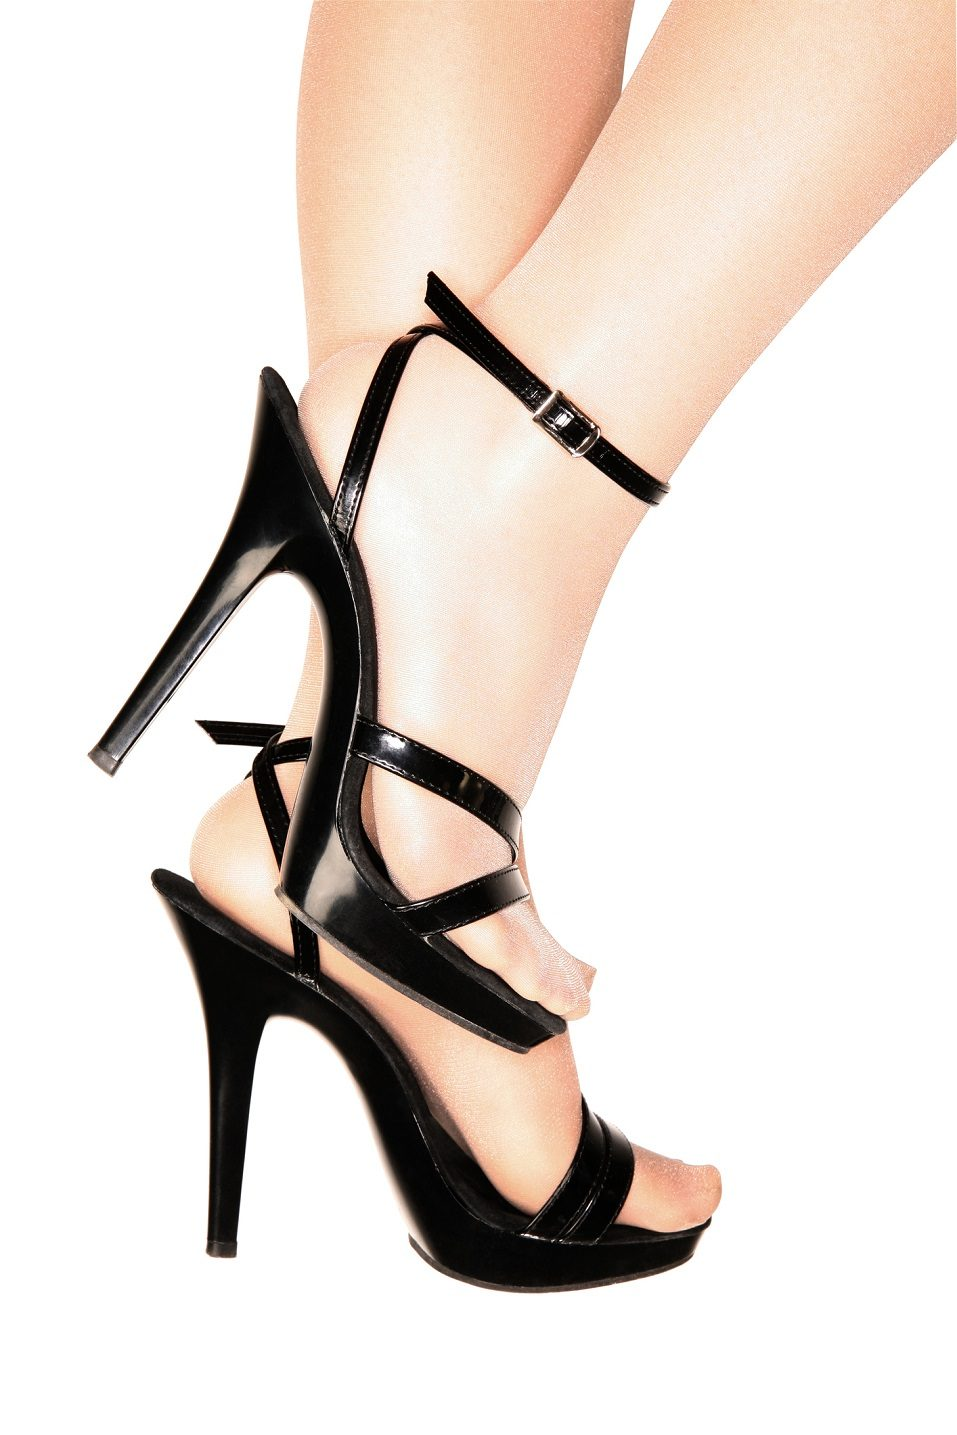 strapped black patent leather high heel stilettos